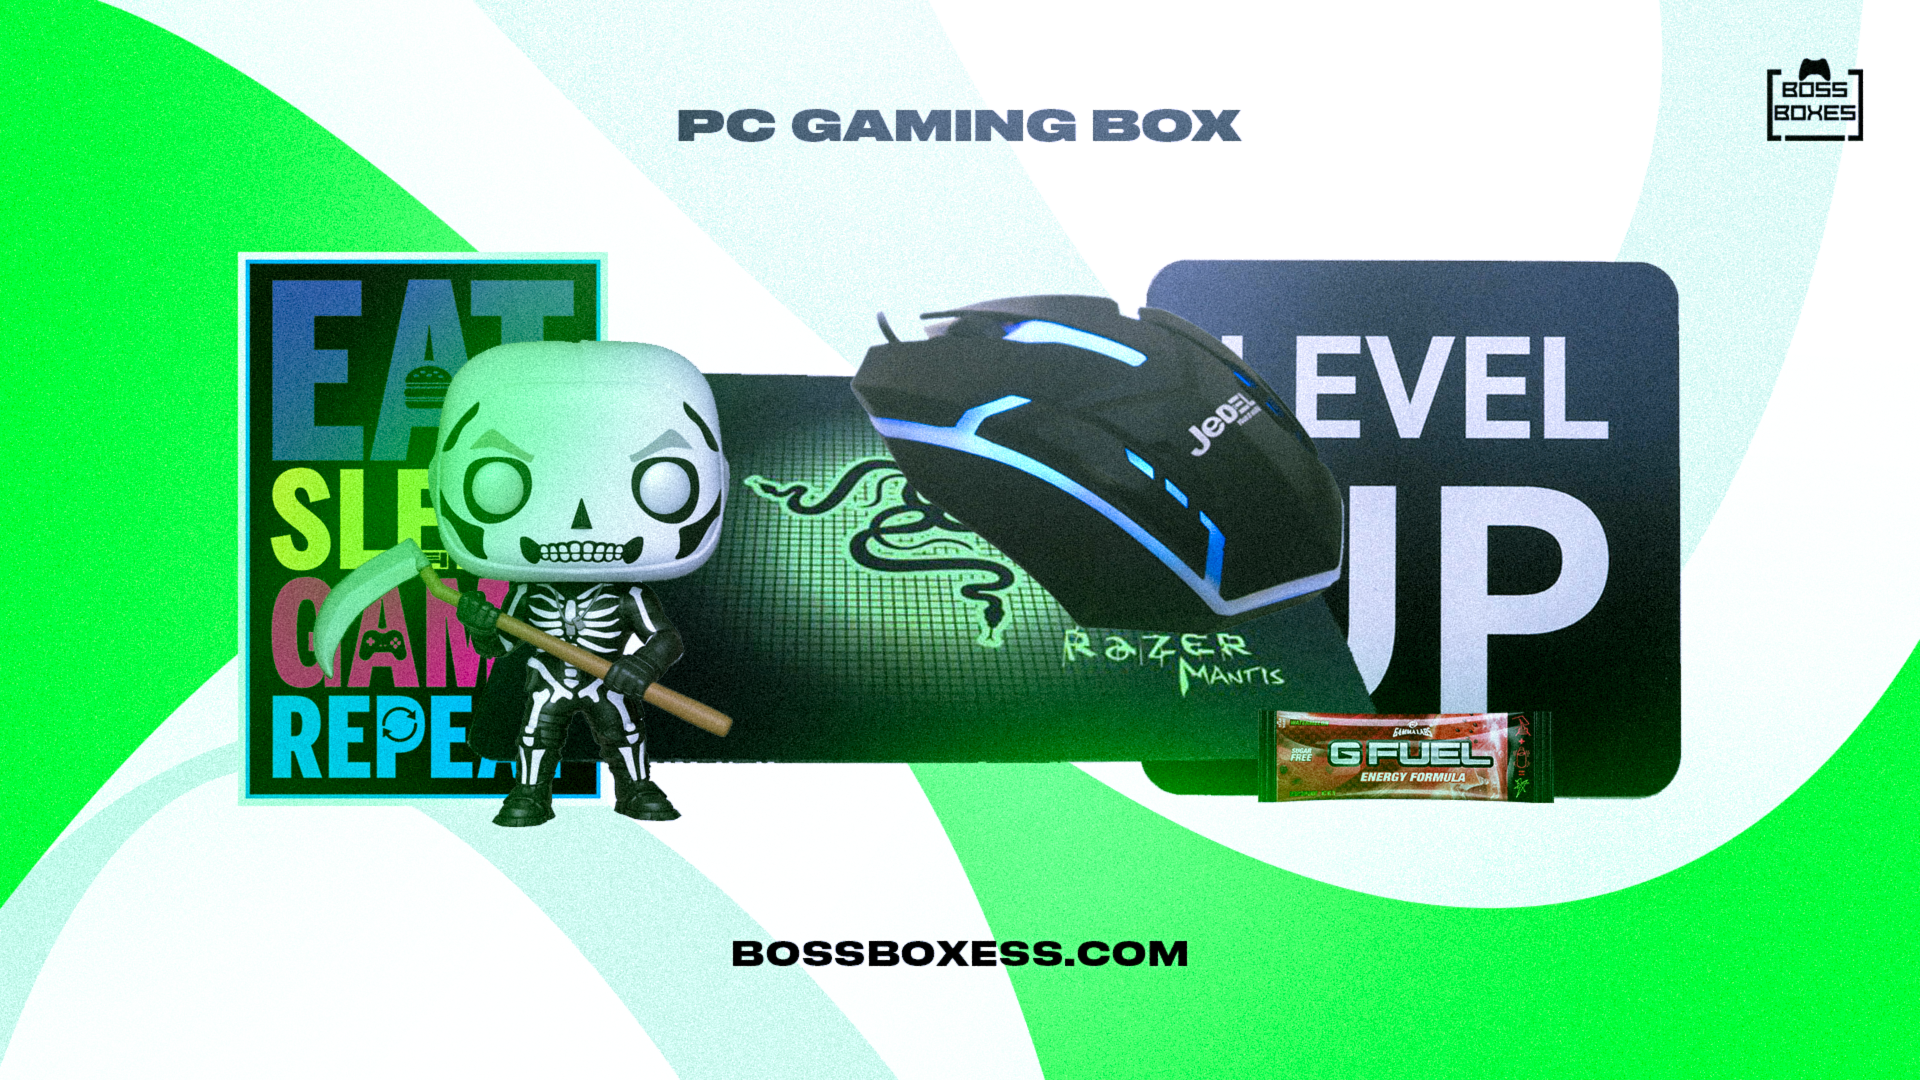 PC Gaming Box